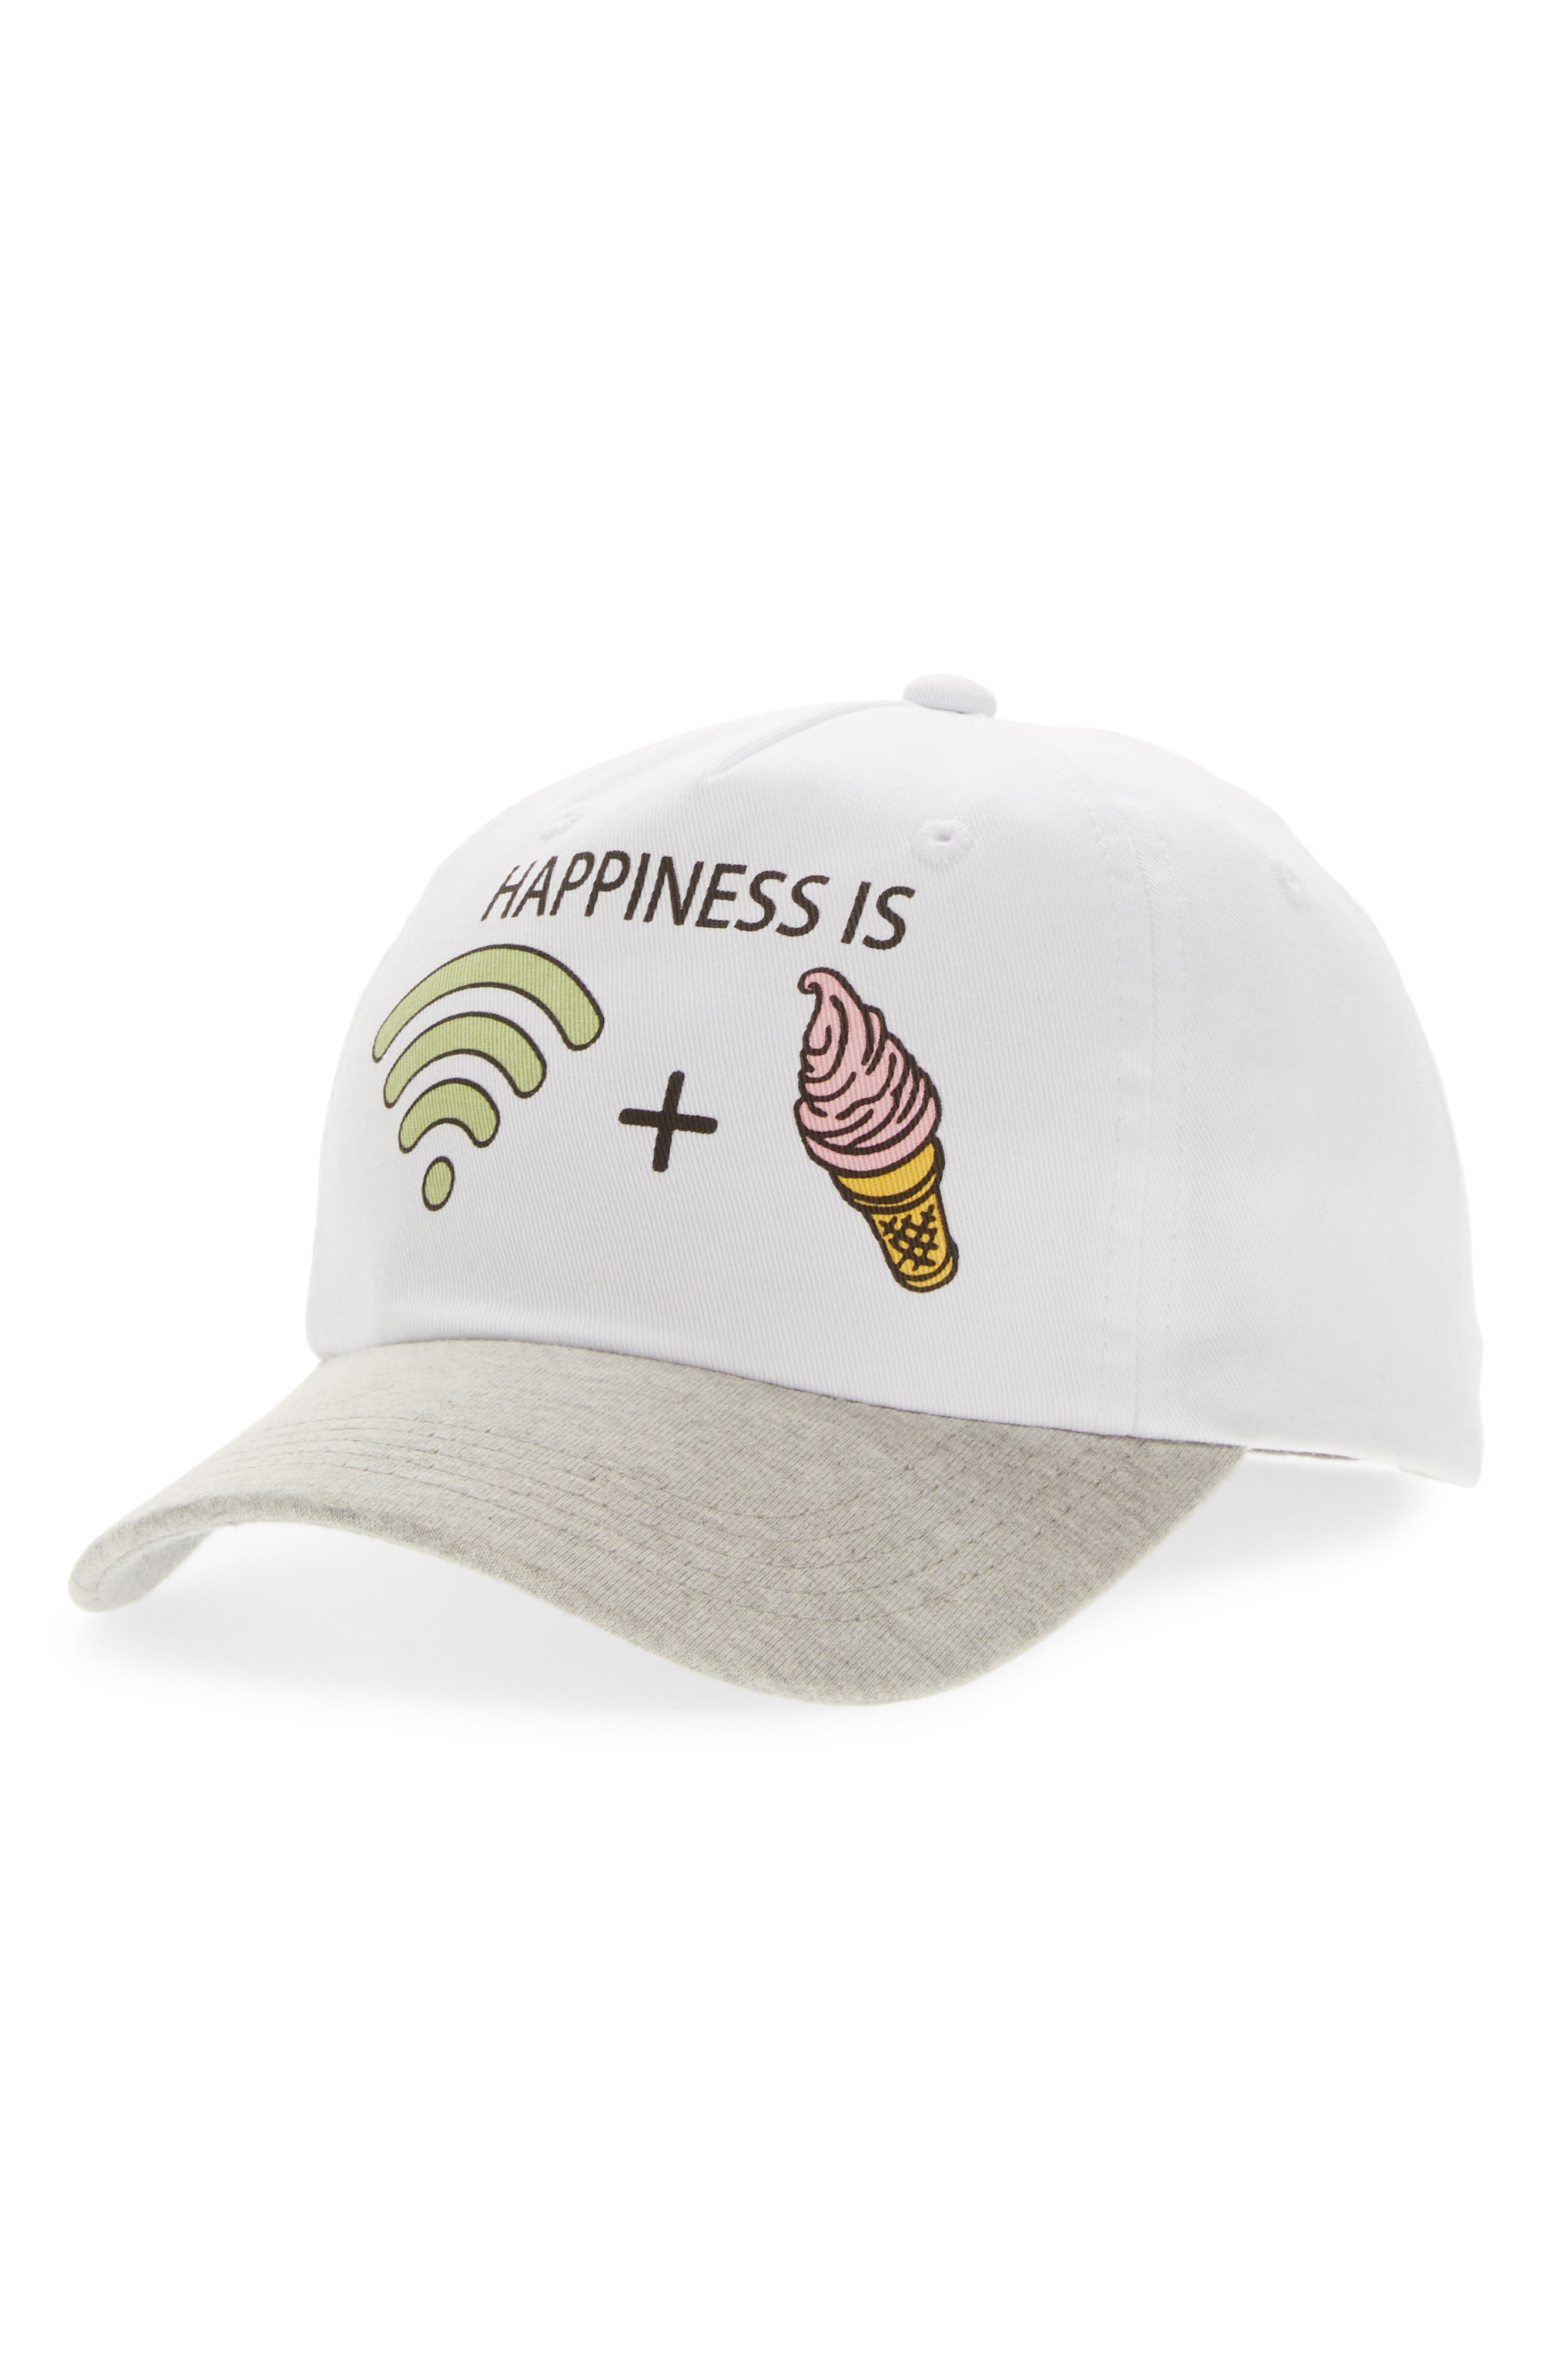 Alternate Image 1 Selected - Accessory Collective Happiness Baseball Cap (Girls)